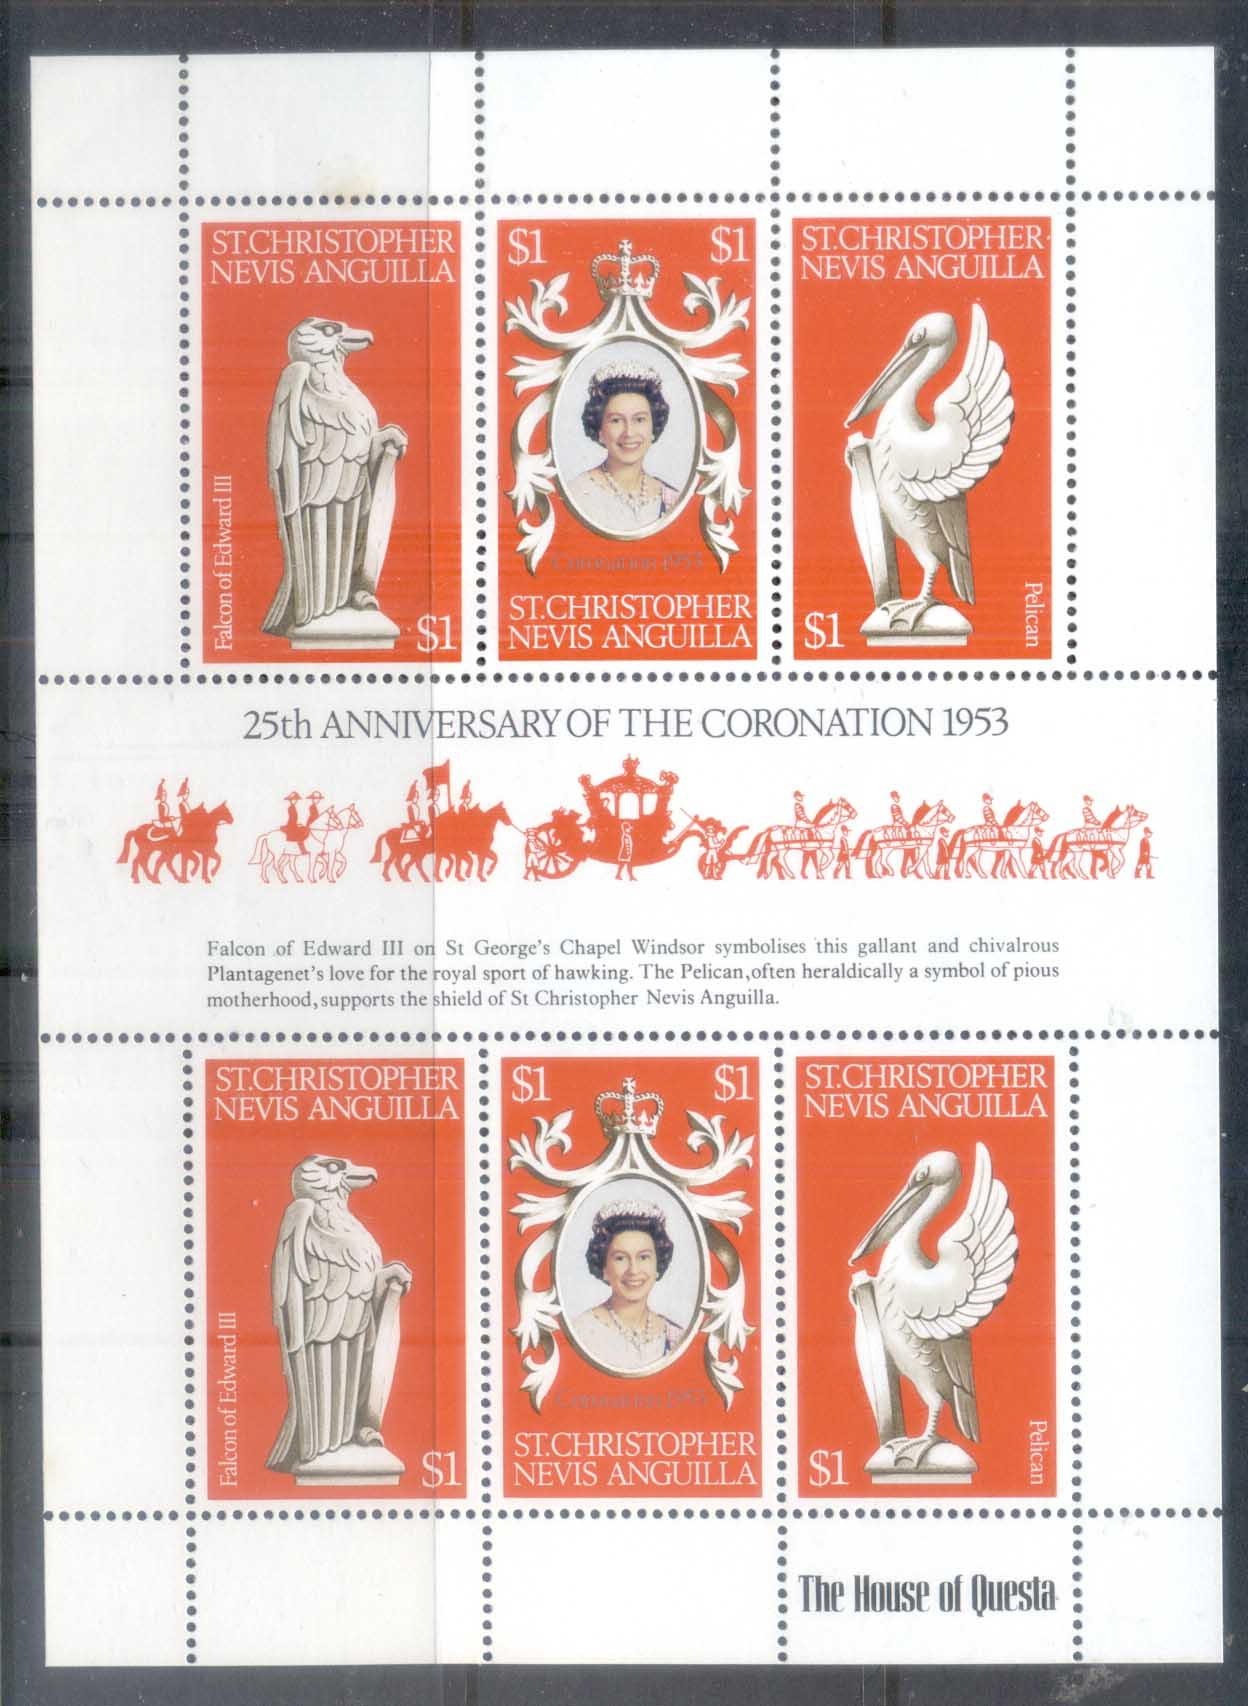 St Christopher Nevis Anguilla 1978 QEII Coronation 25th Anniversary MS MUH